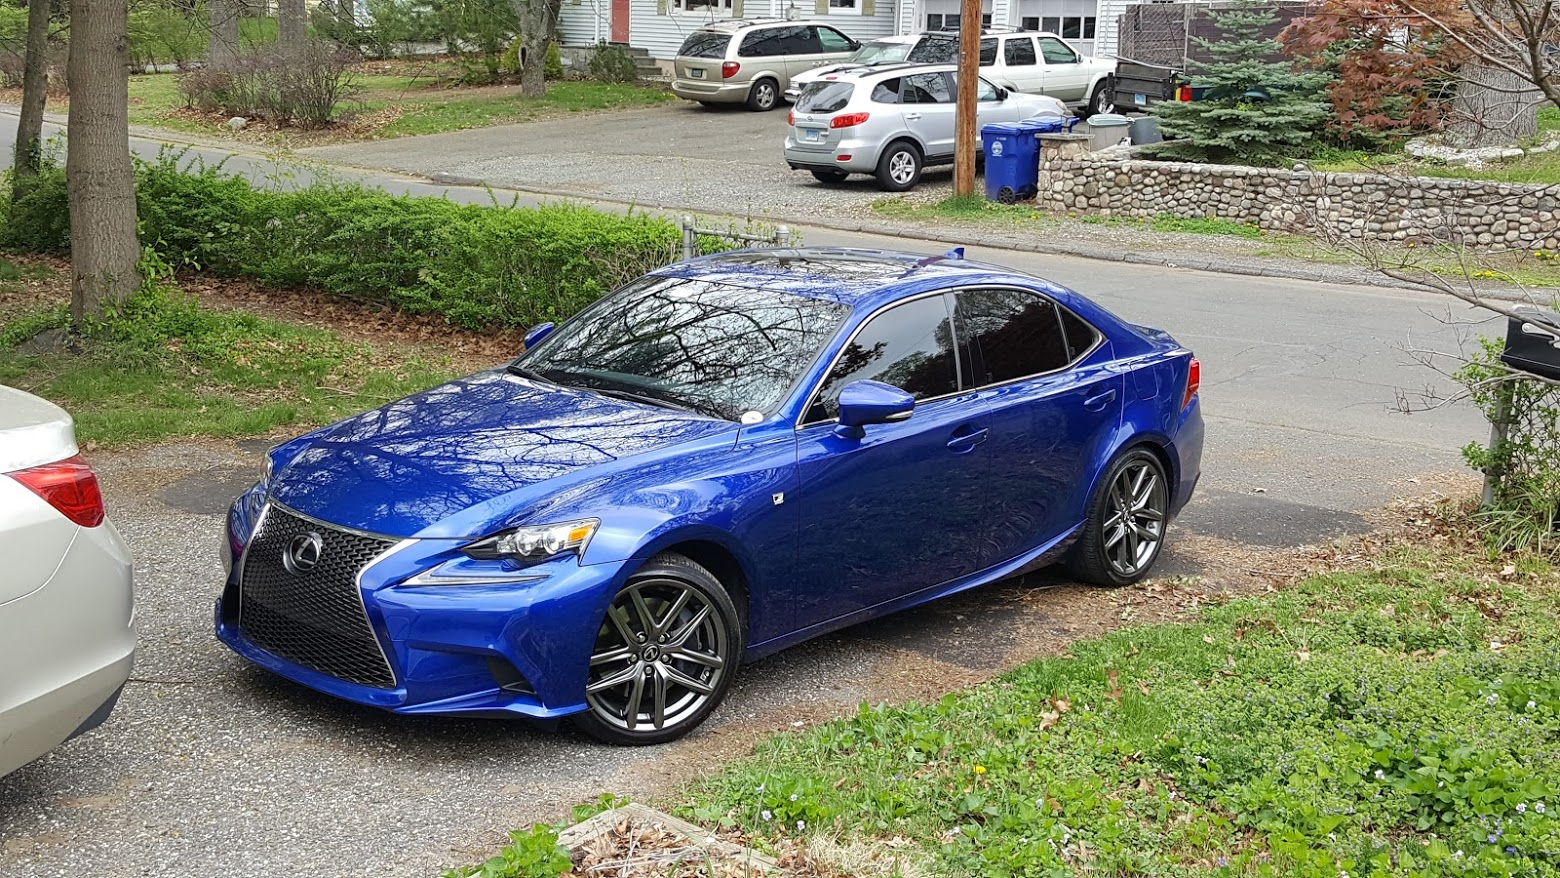 2016 lexus is350 fsport lease just about over - ask the hackrs